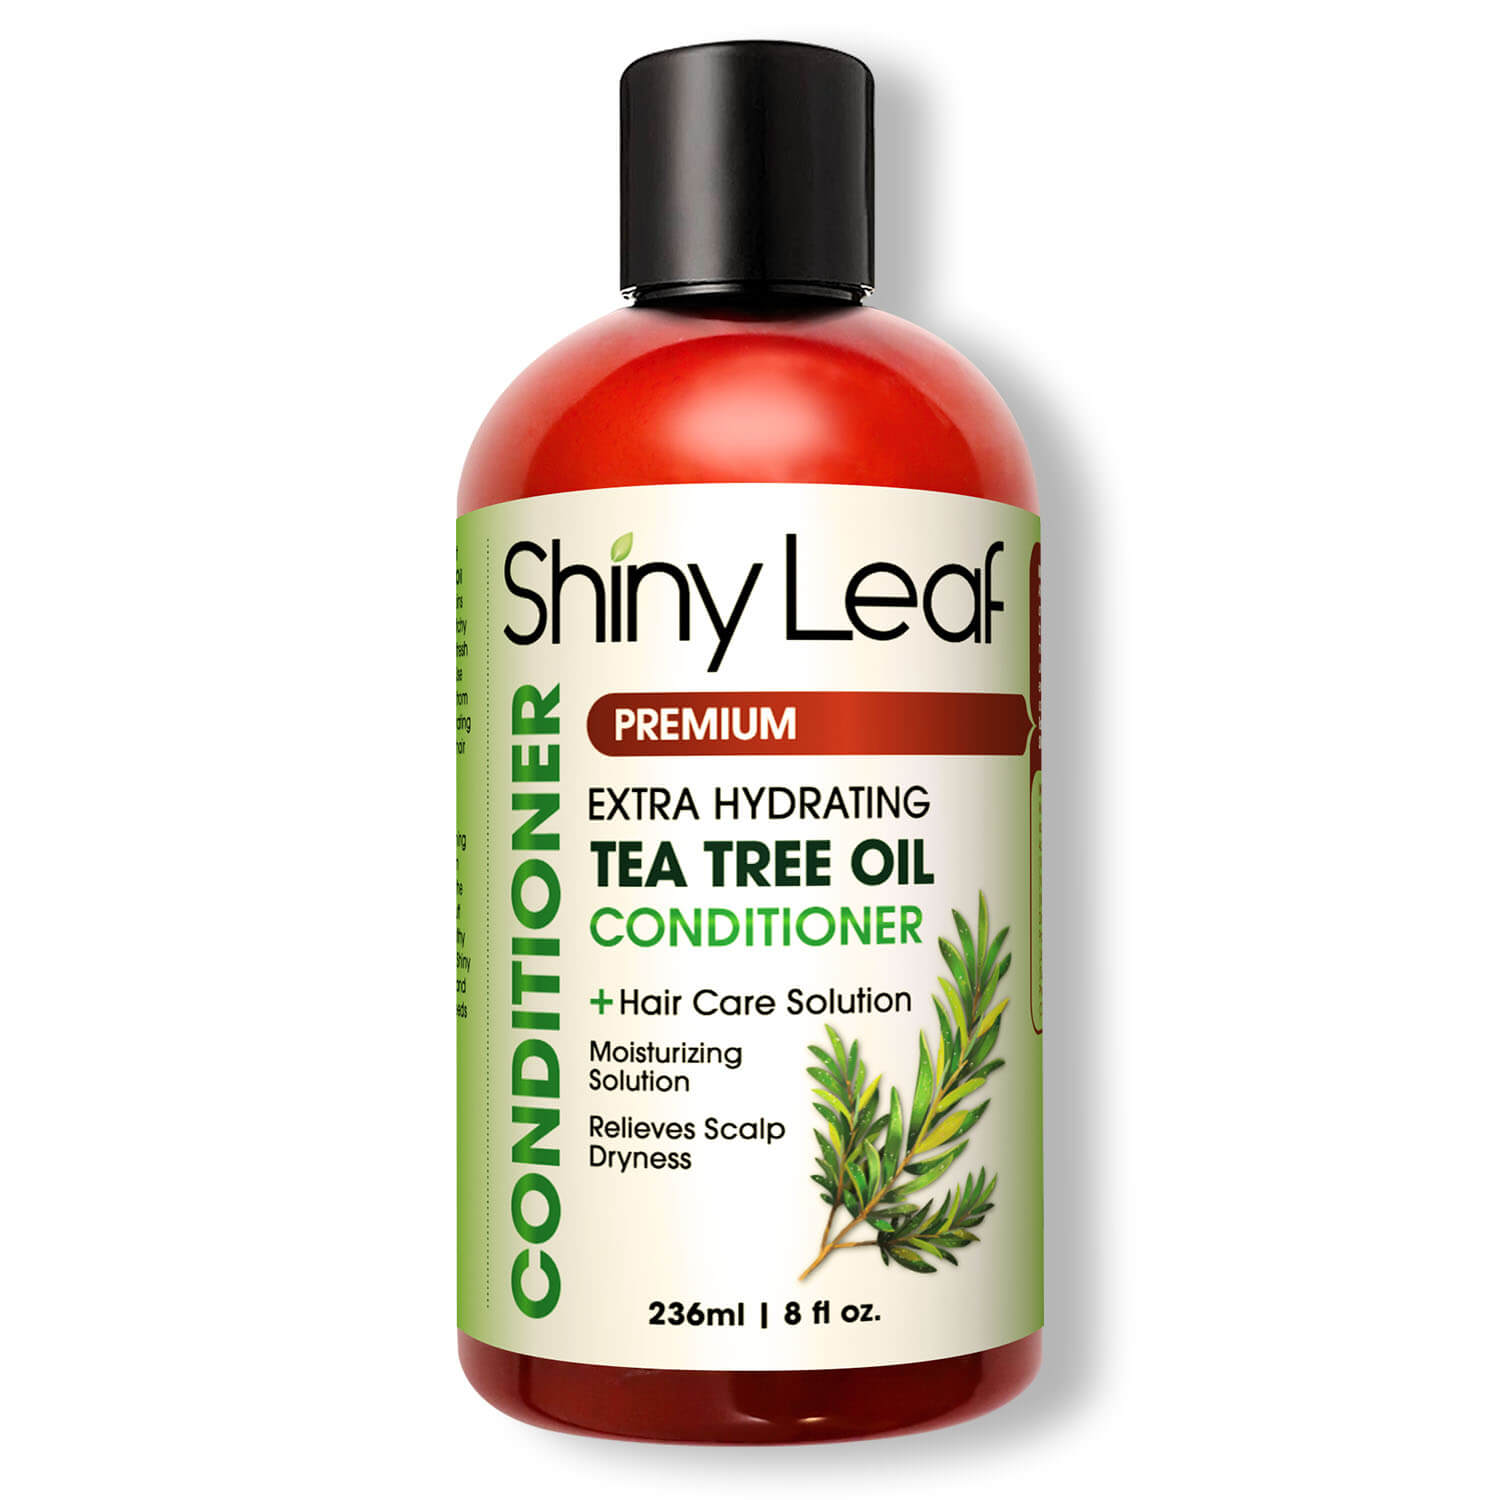 Extra Hydrating Tea Tree Oil Conditioner